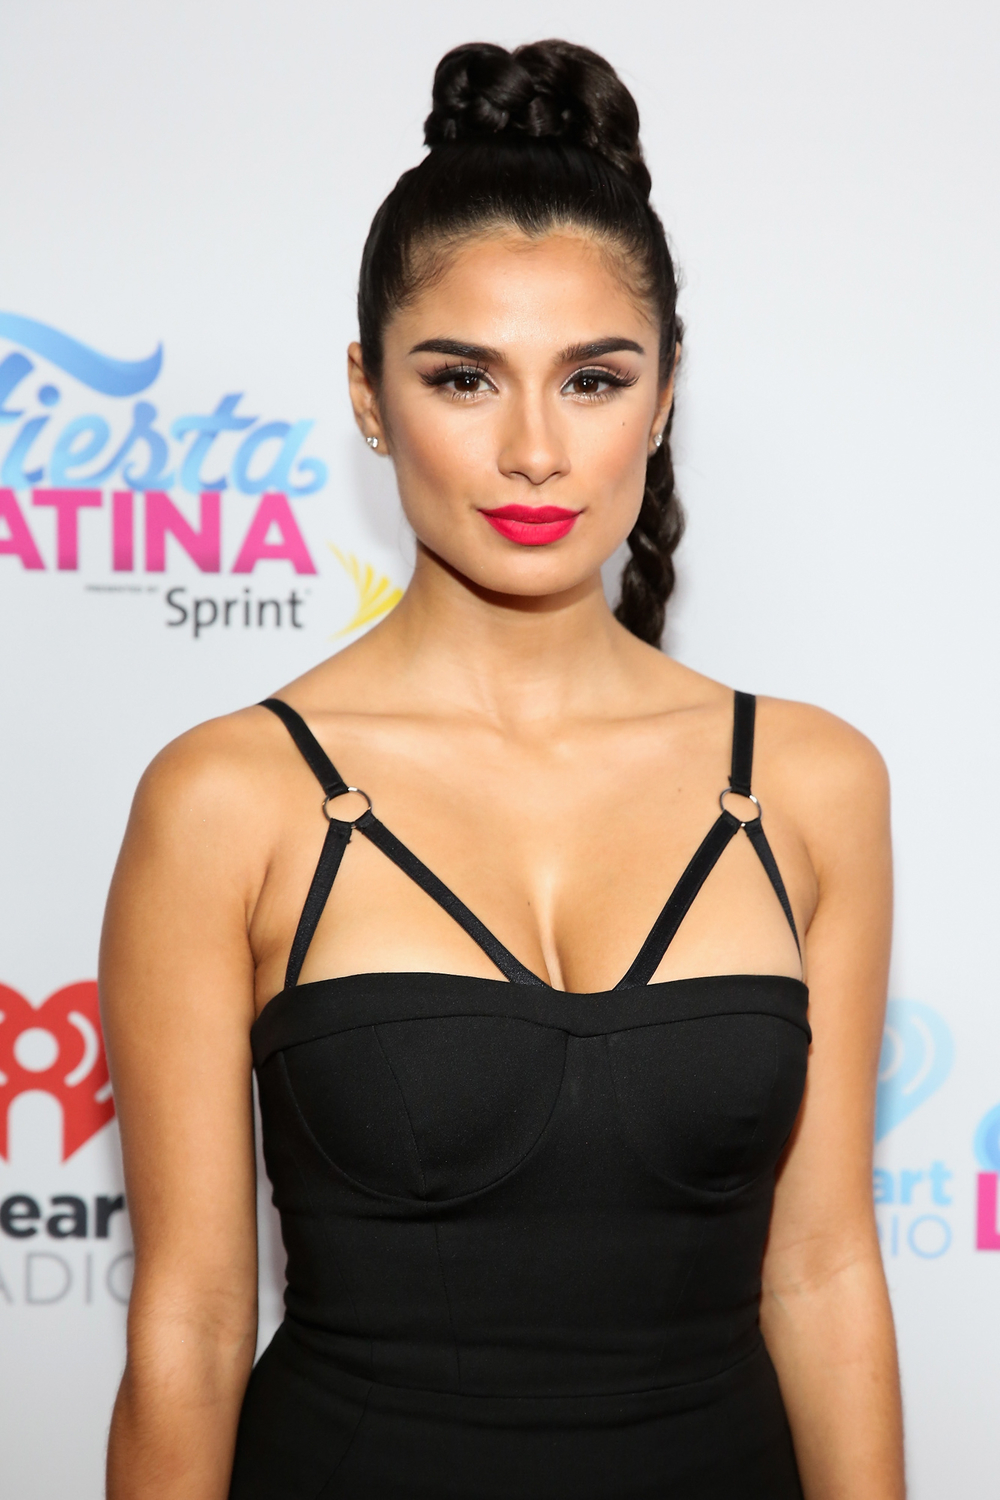 MIAMI, FL - NOVEMBER 07:  Actress Diane Guerrero attends iHeartRadio Fiesta Latina presented by Sprint at American Airlines Arena on November 7, 2015 in Miami, Florida.  (Photo by Aaron Davidson/Getty Images for iHeartMedia) *** Local Caption *** Diane Guerrero